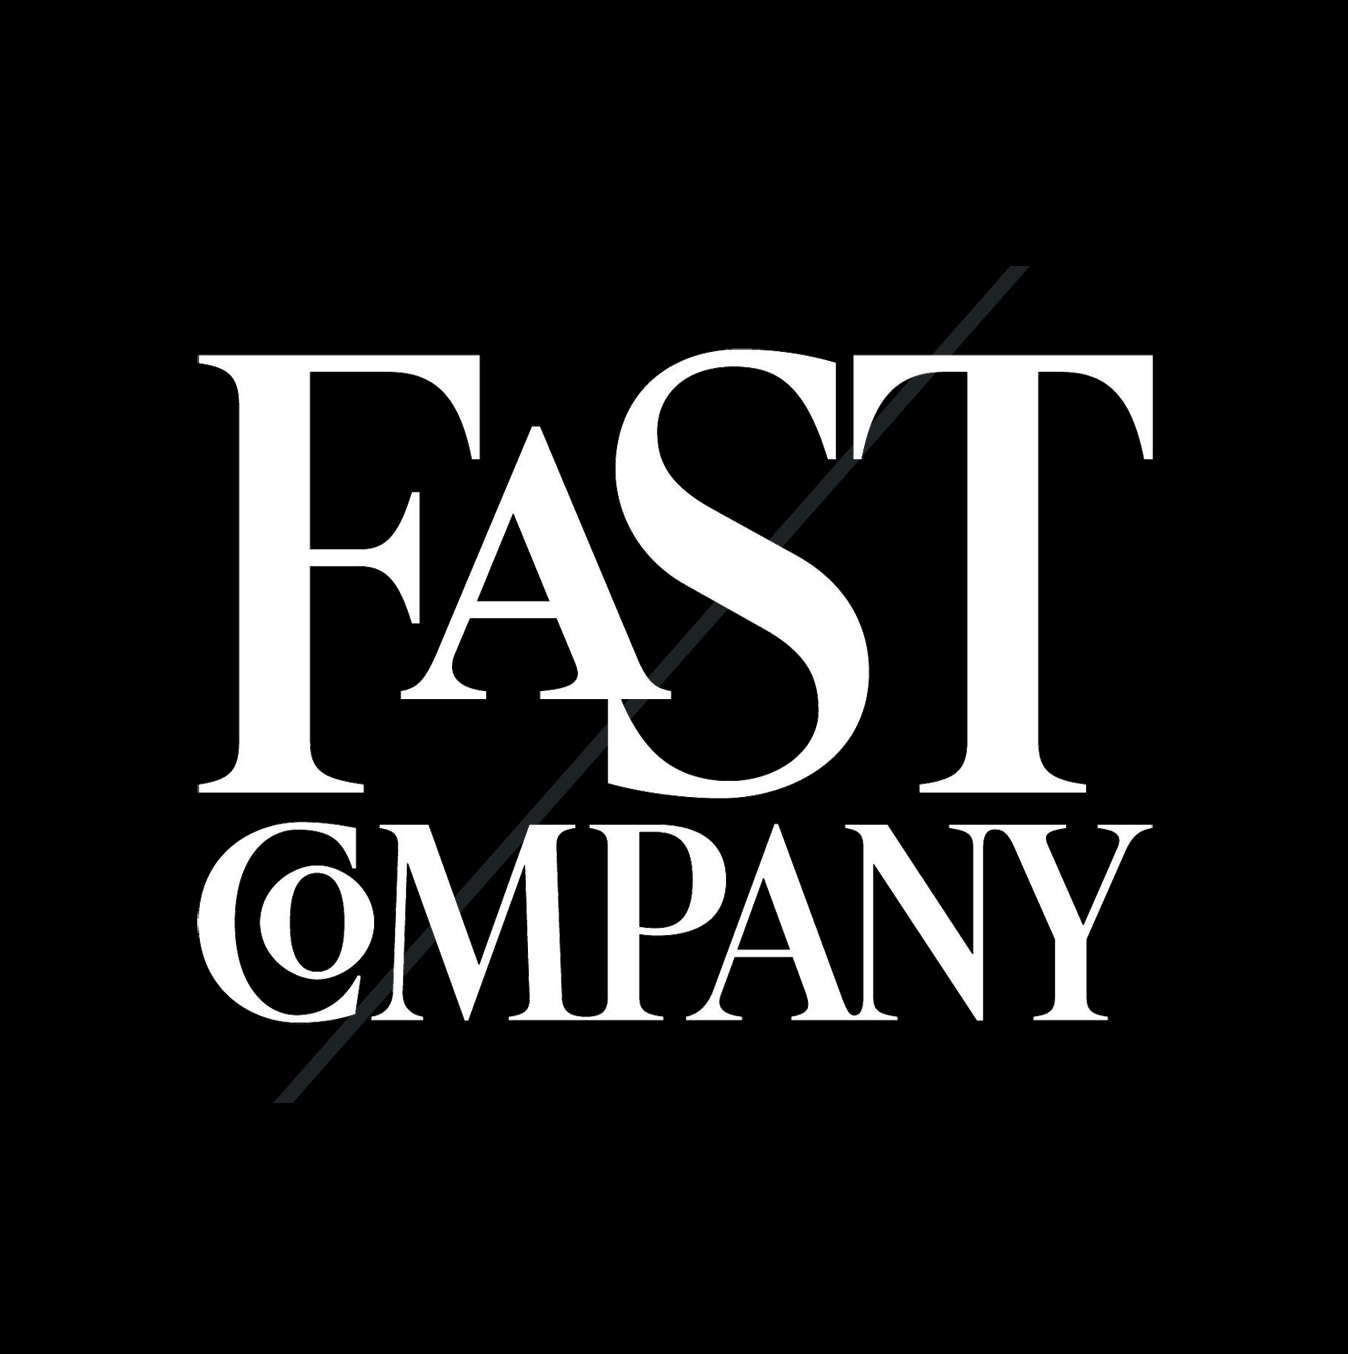 """Some of the smartest in the business: creative, plugged into current events, and have inspired me to write several stories, some not even involving their clients."" - - Elizabeth Segran, Fast Company"